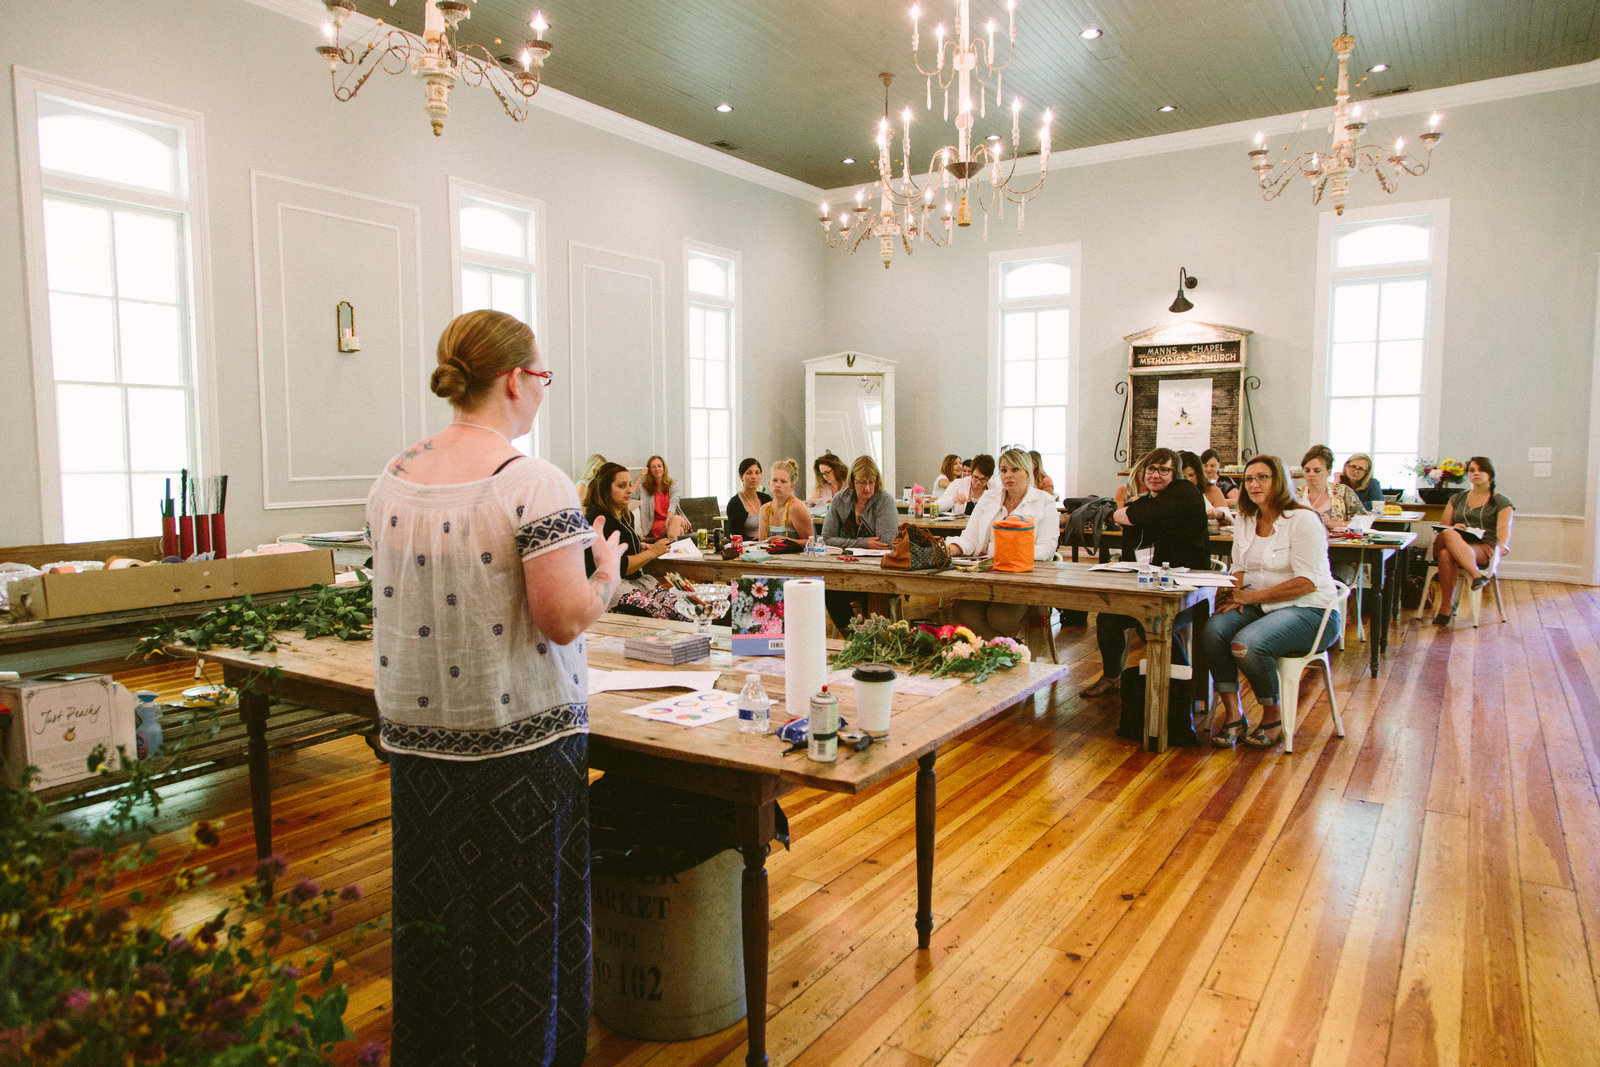 Holly Chapple, Chapel designers Floral workshop at The Parlour in Chapel Hill, North Carolina